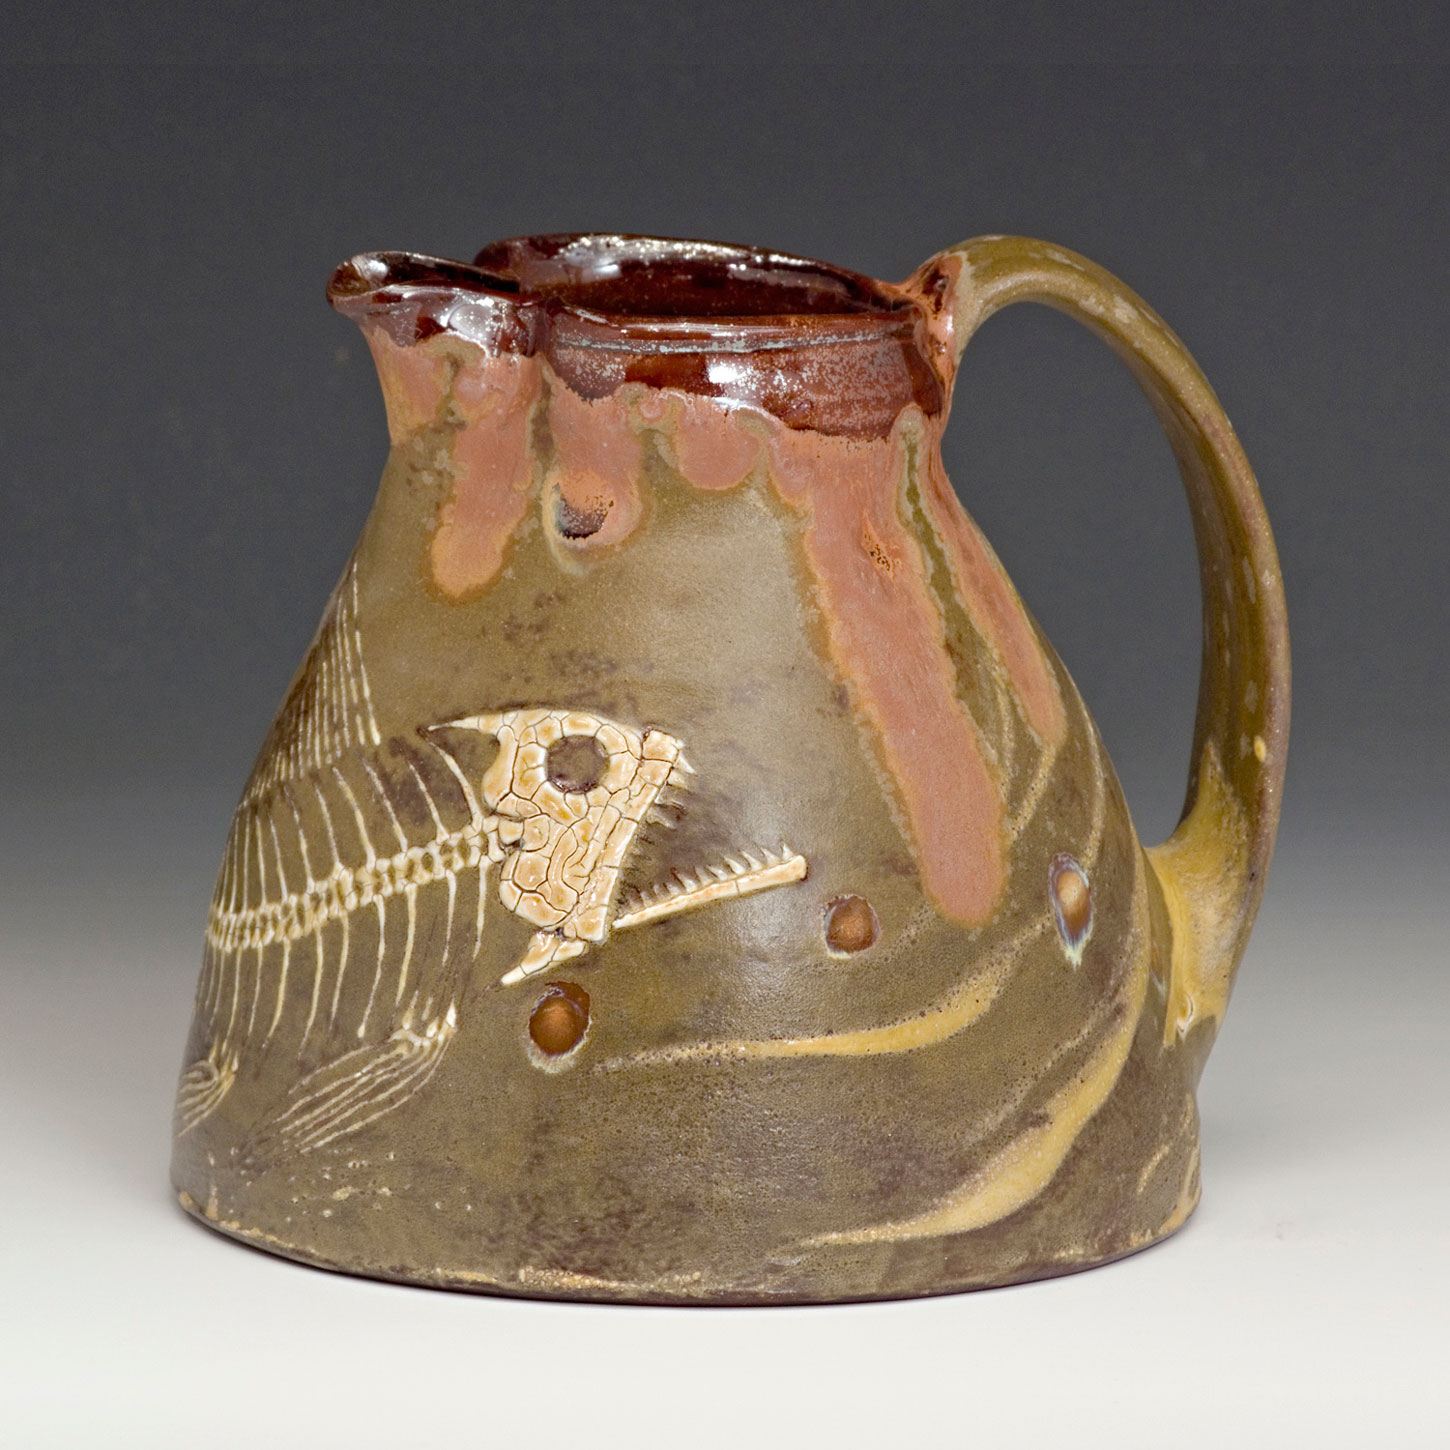 Fossil-Fish-Pitcher-Bruce-Gholson-Seagrove-Pottery.jpg